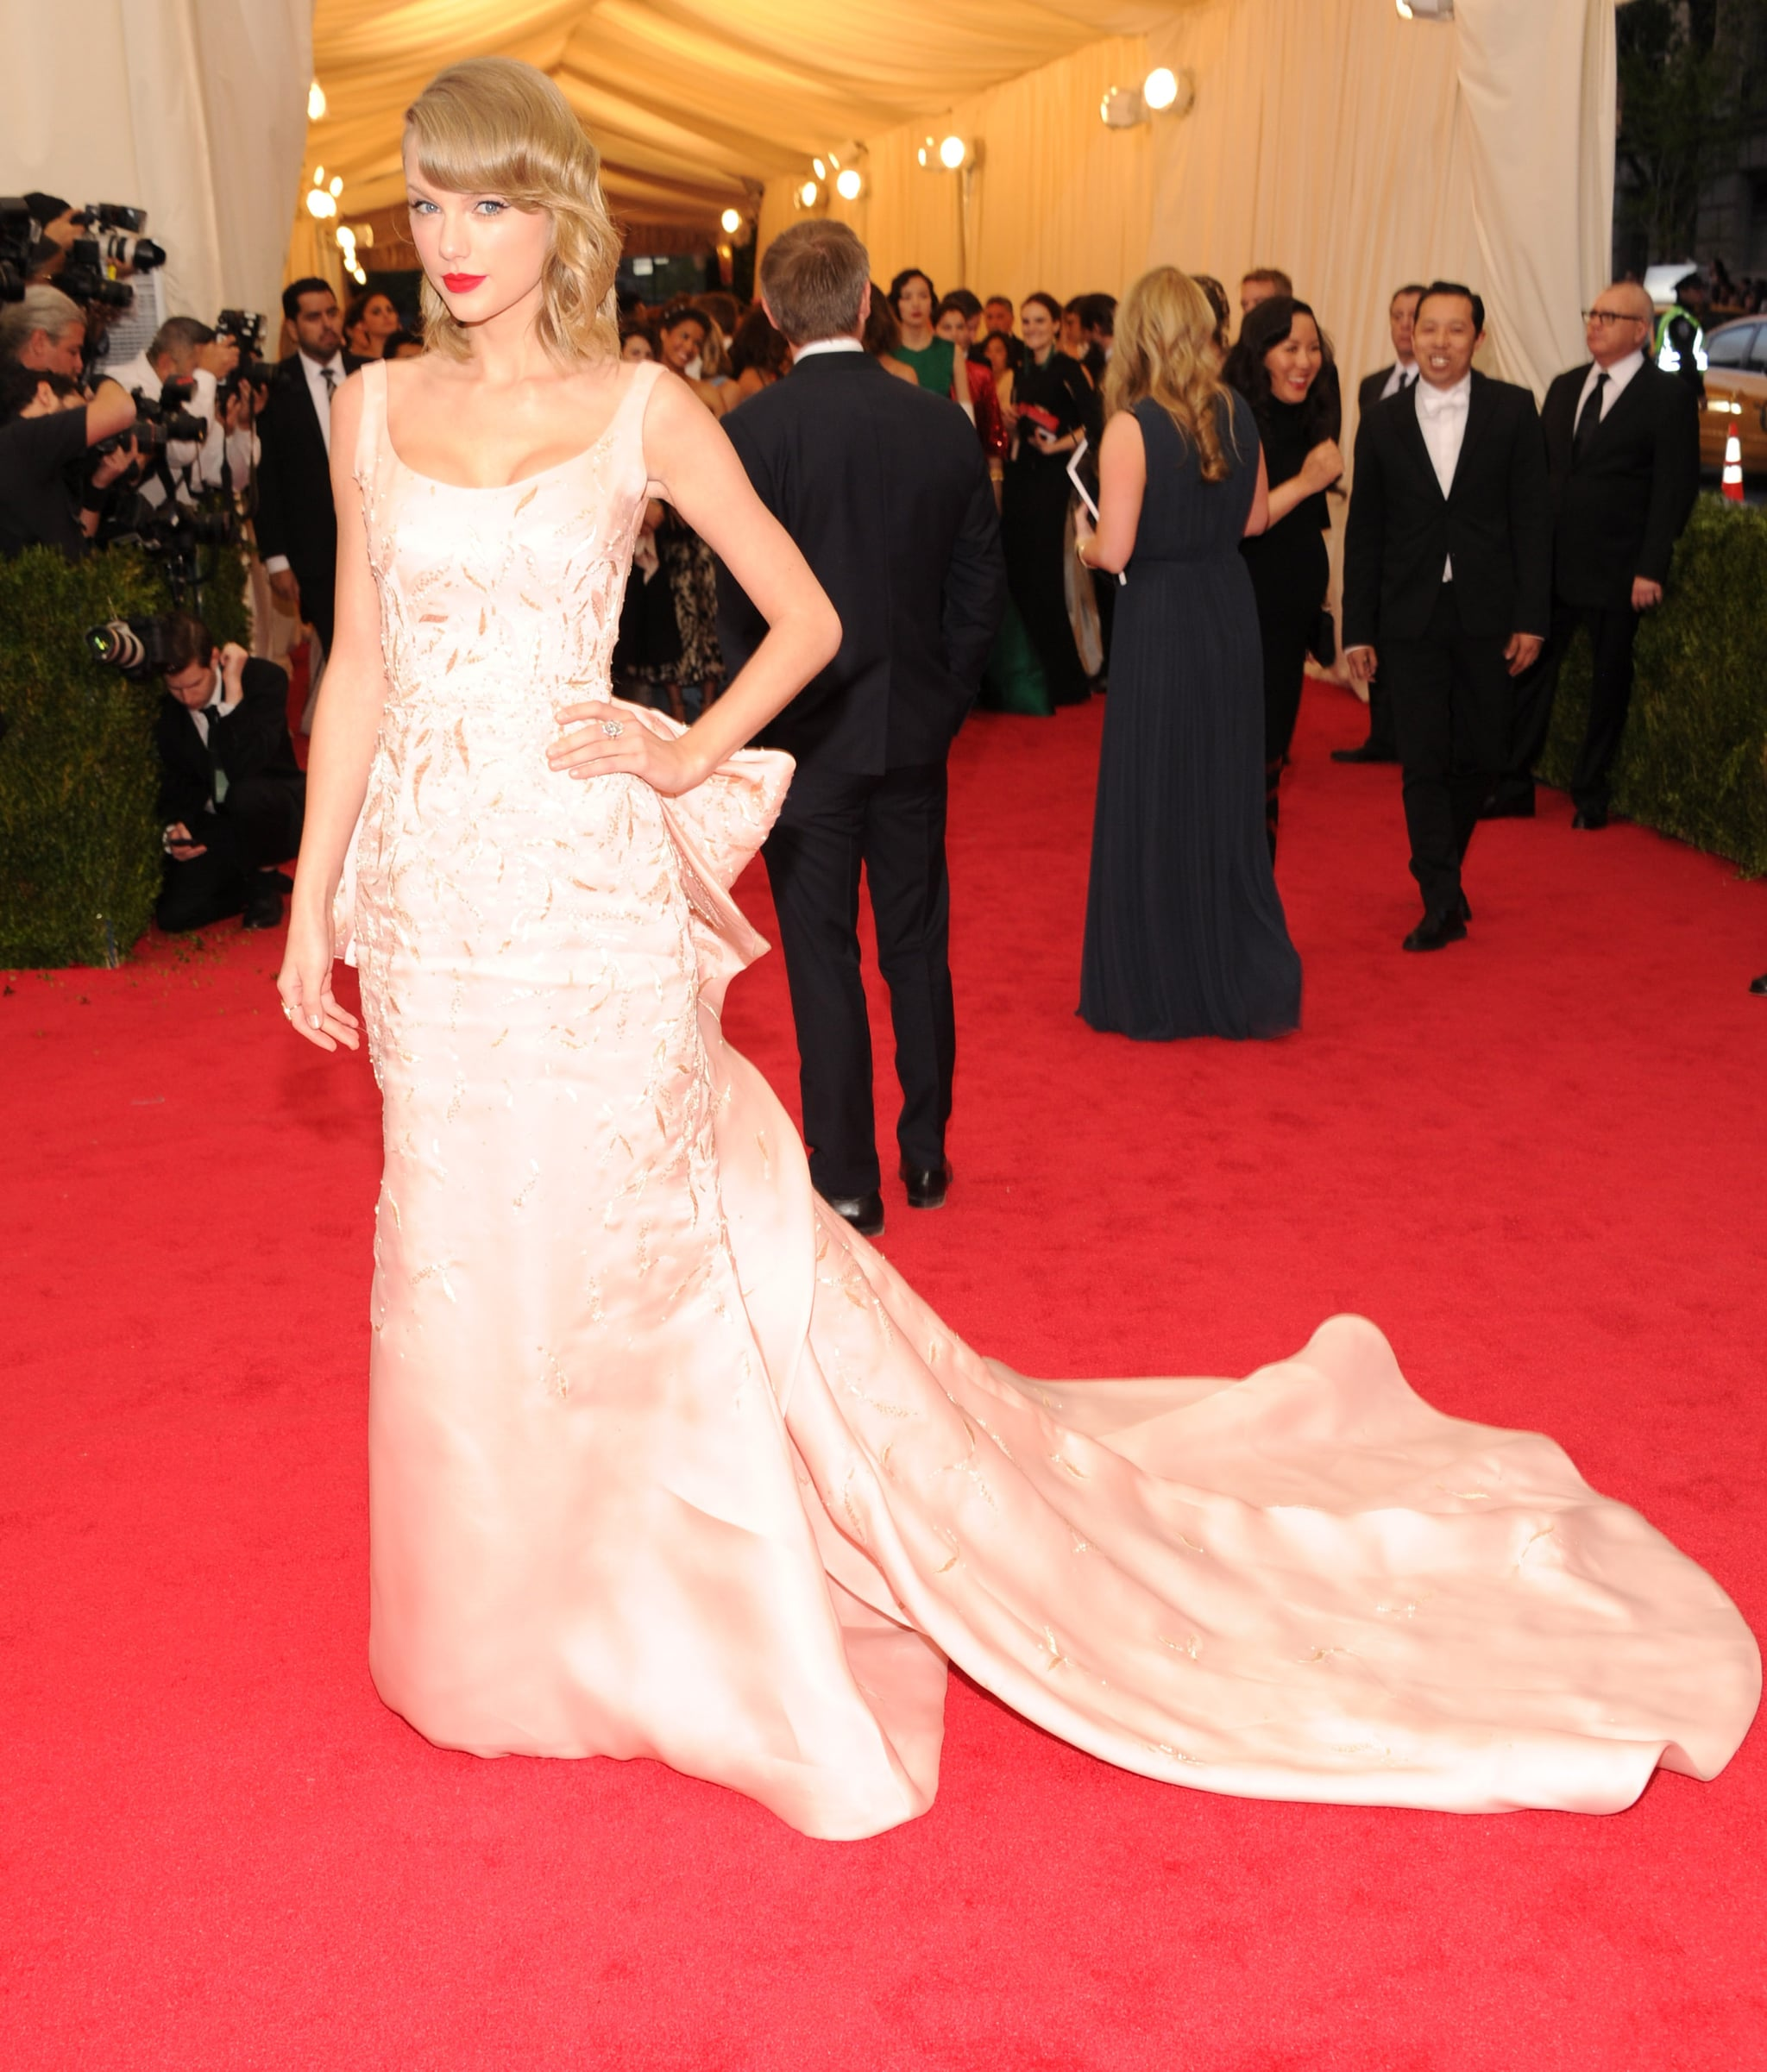 Taylor Swift Remains a Lady at the Met Gala